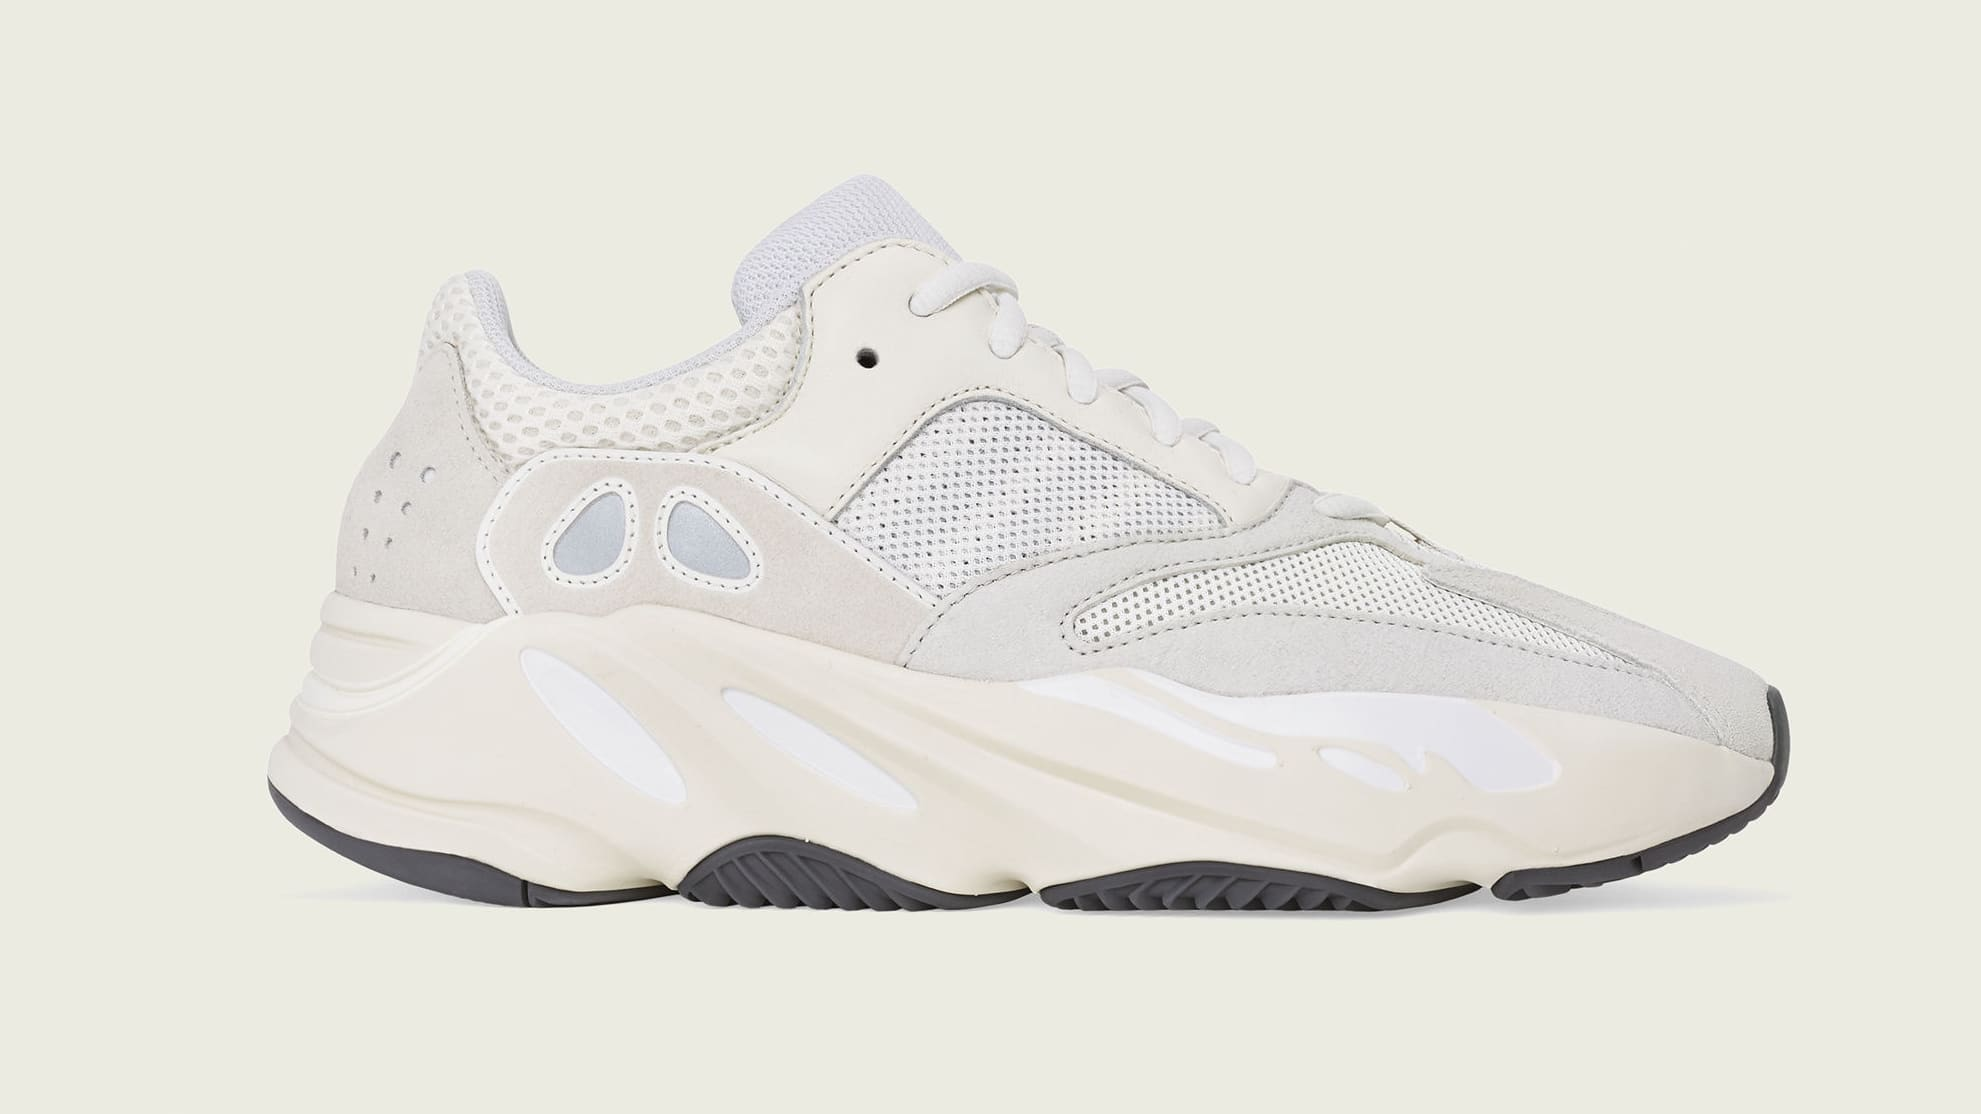 Adidas Yeezy Boost 700 'Analog' EG7596 (Lateral)